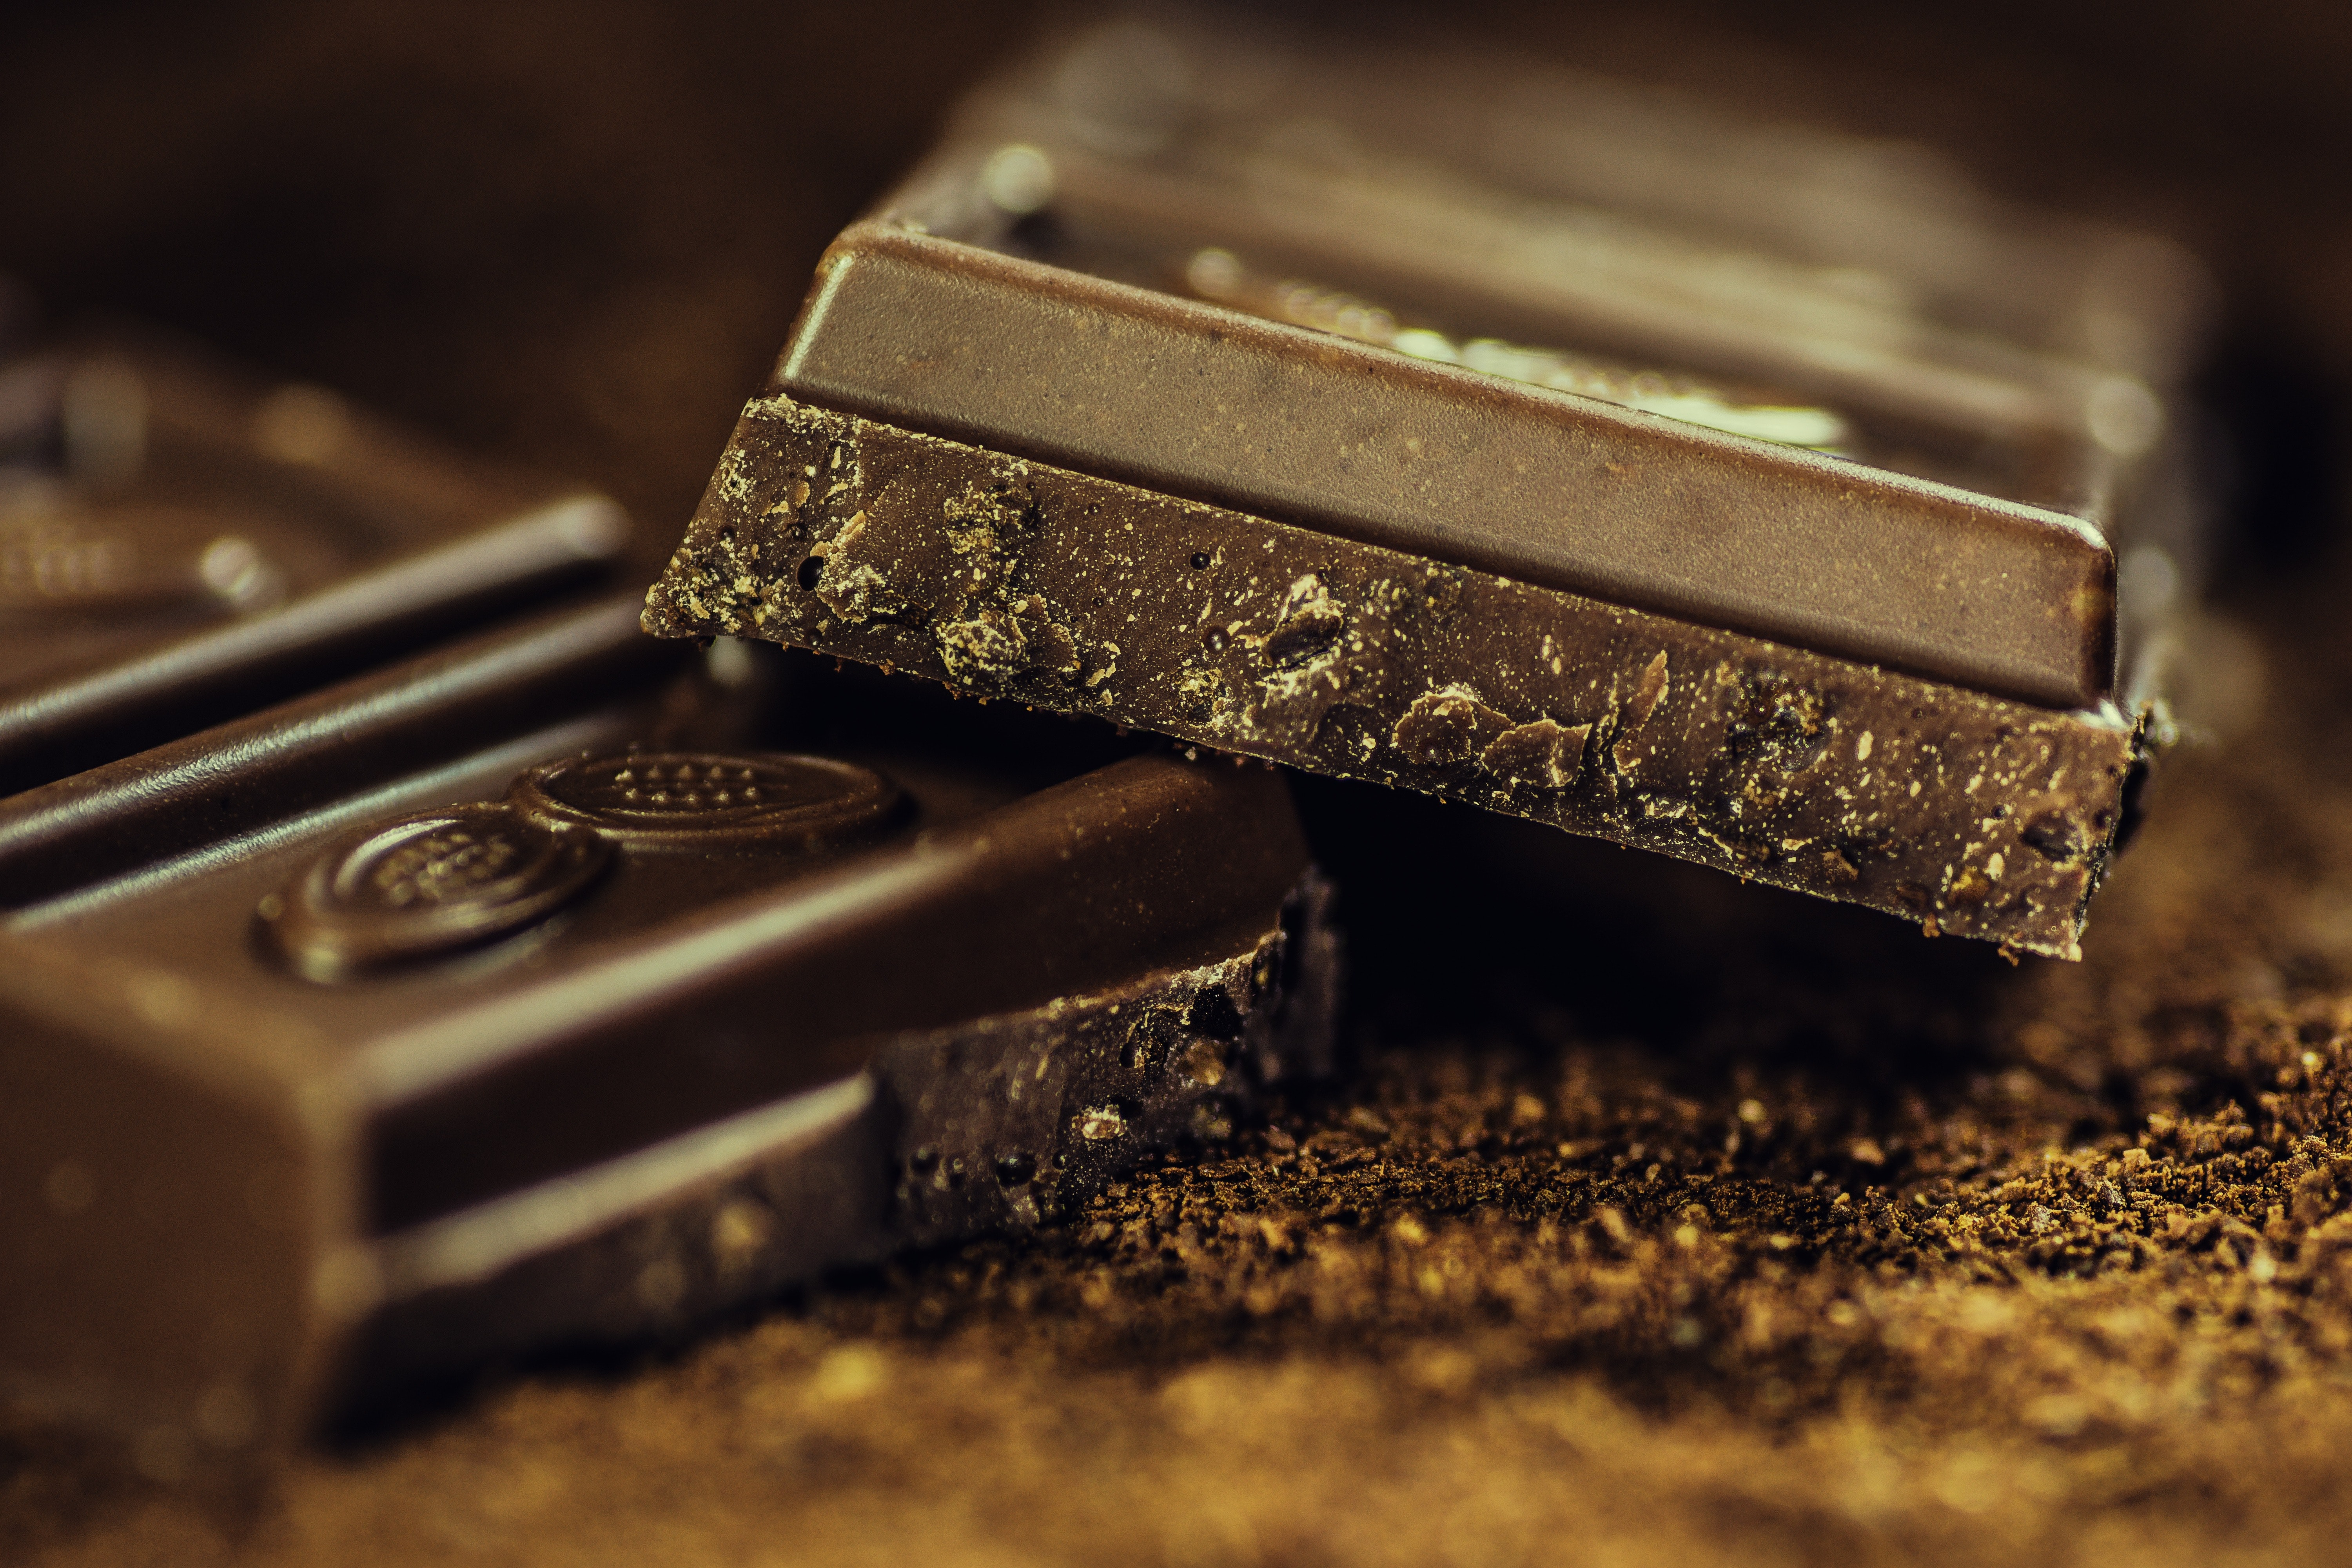 Doctors warn women against putting melted chocolate in their vaginas